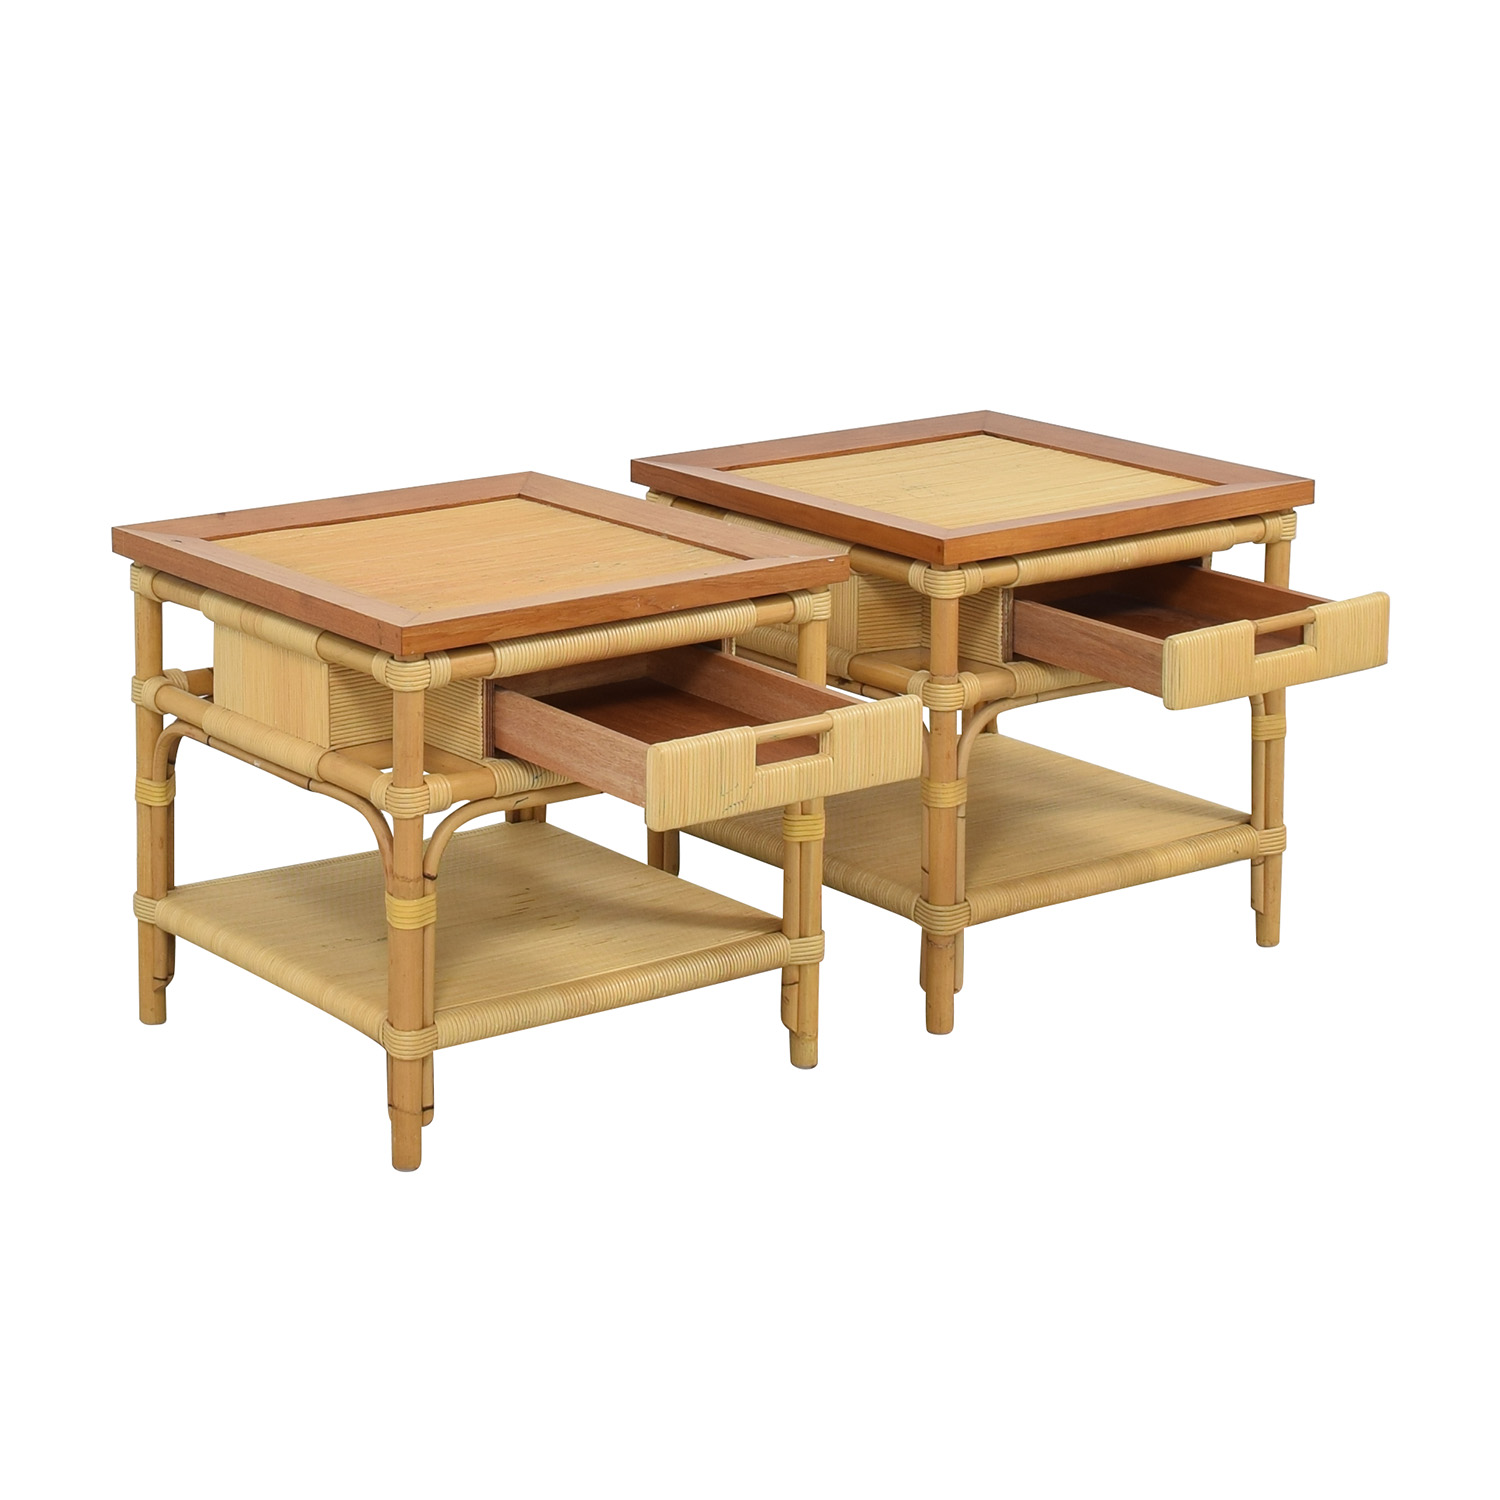 Donghia Donghia Modern Bamboo and Reed Tables price